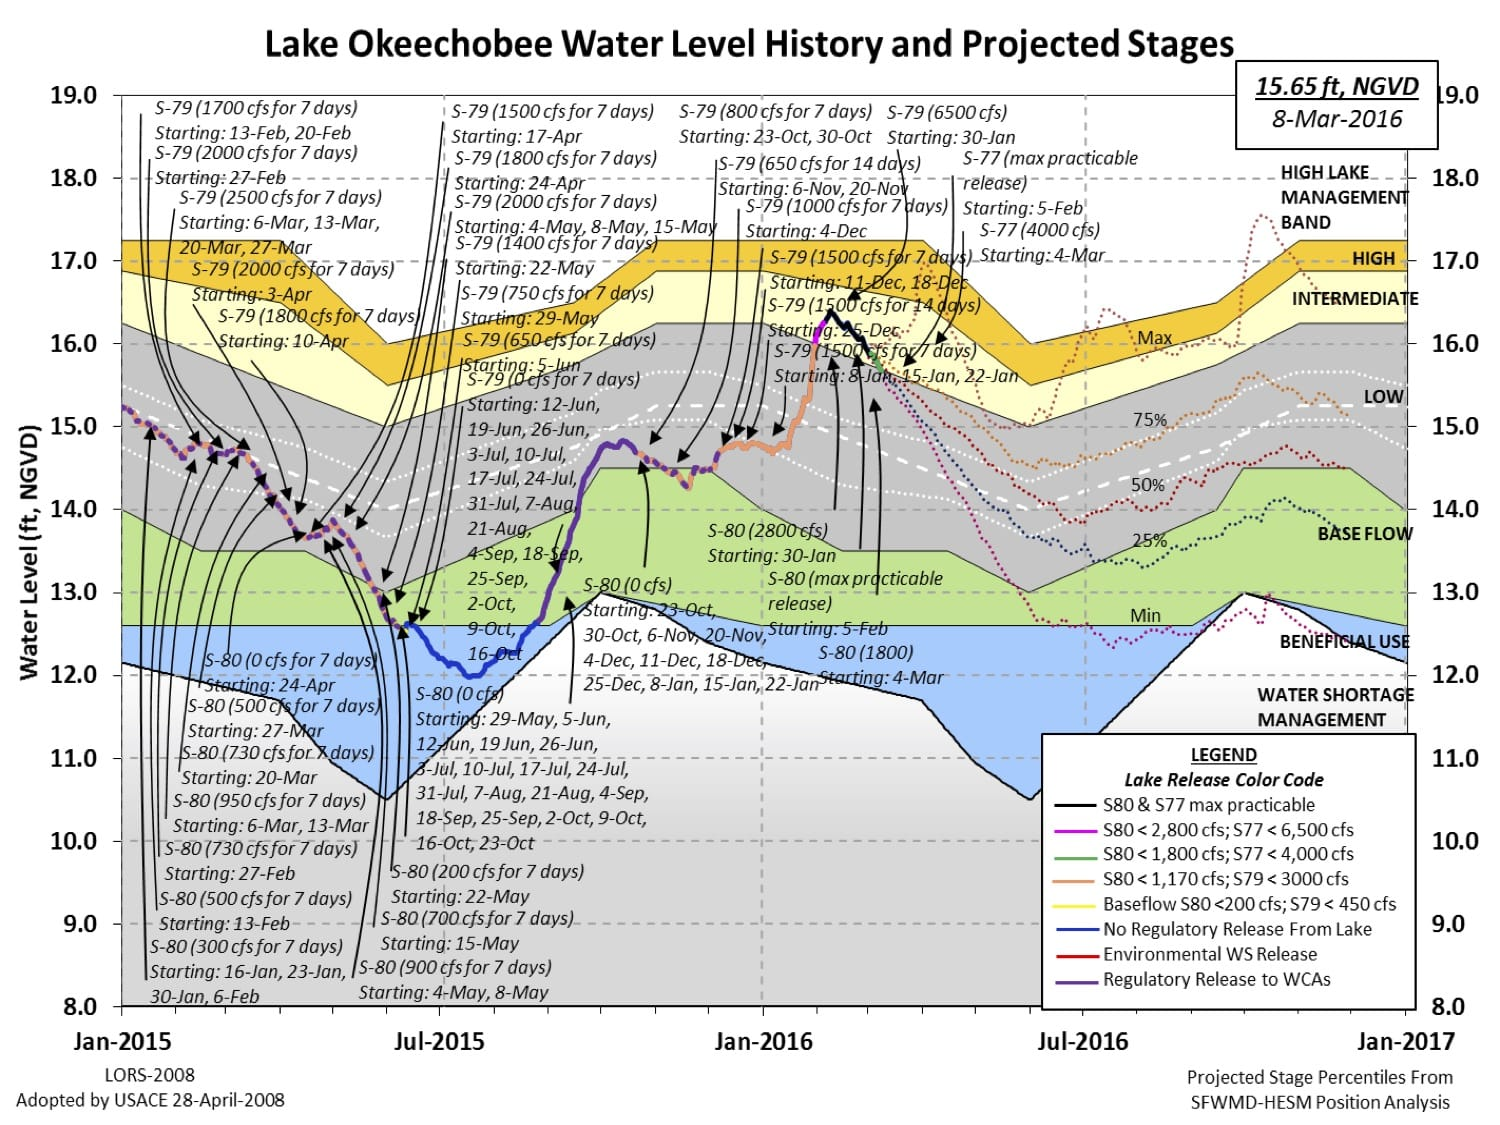 Lake Okeechobee Water Level History And Projected Stages, 3-8-16. Source: South Florida Water Management District.